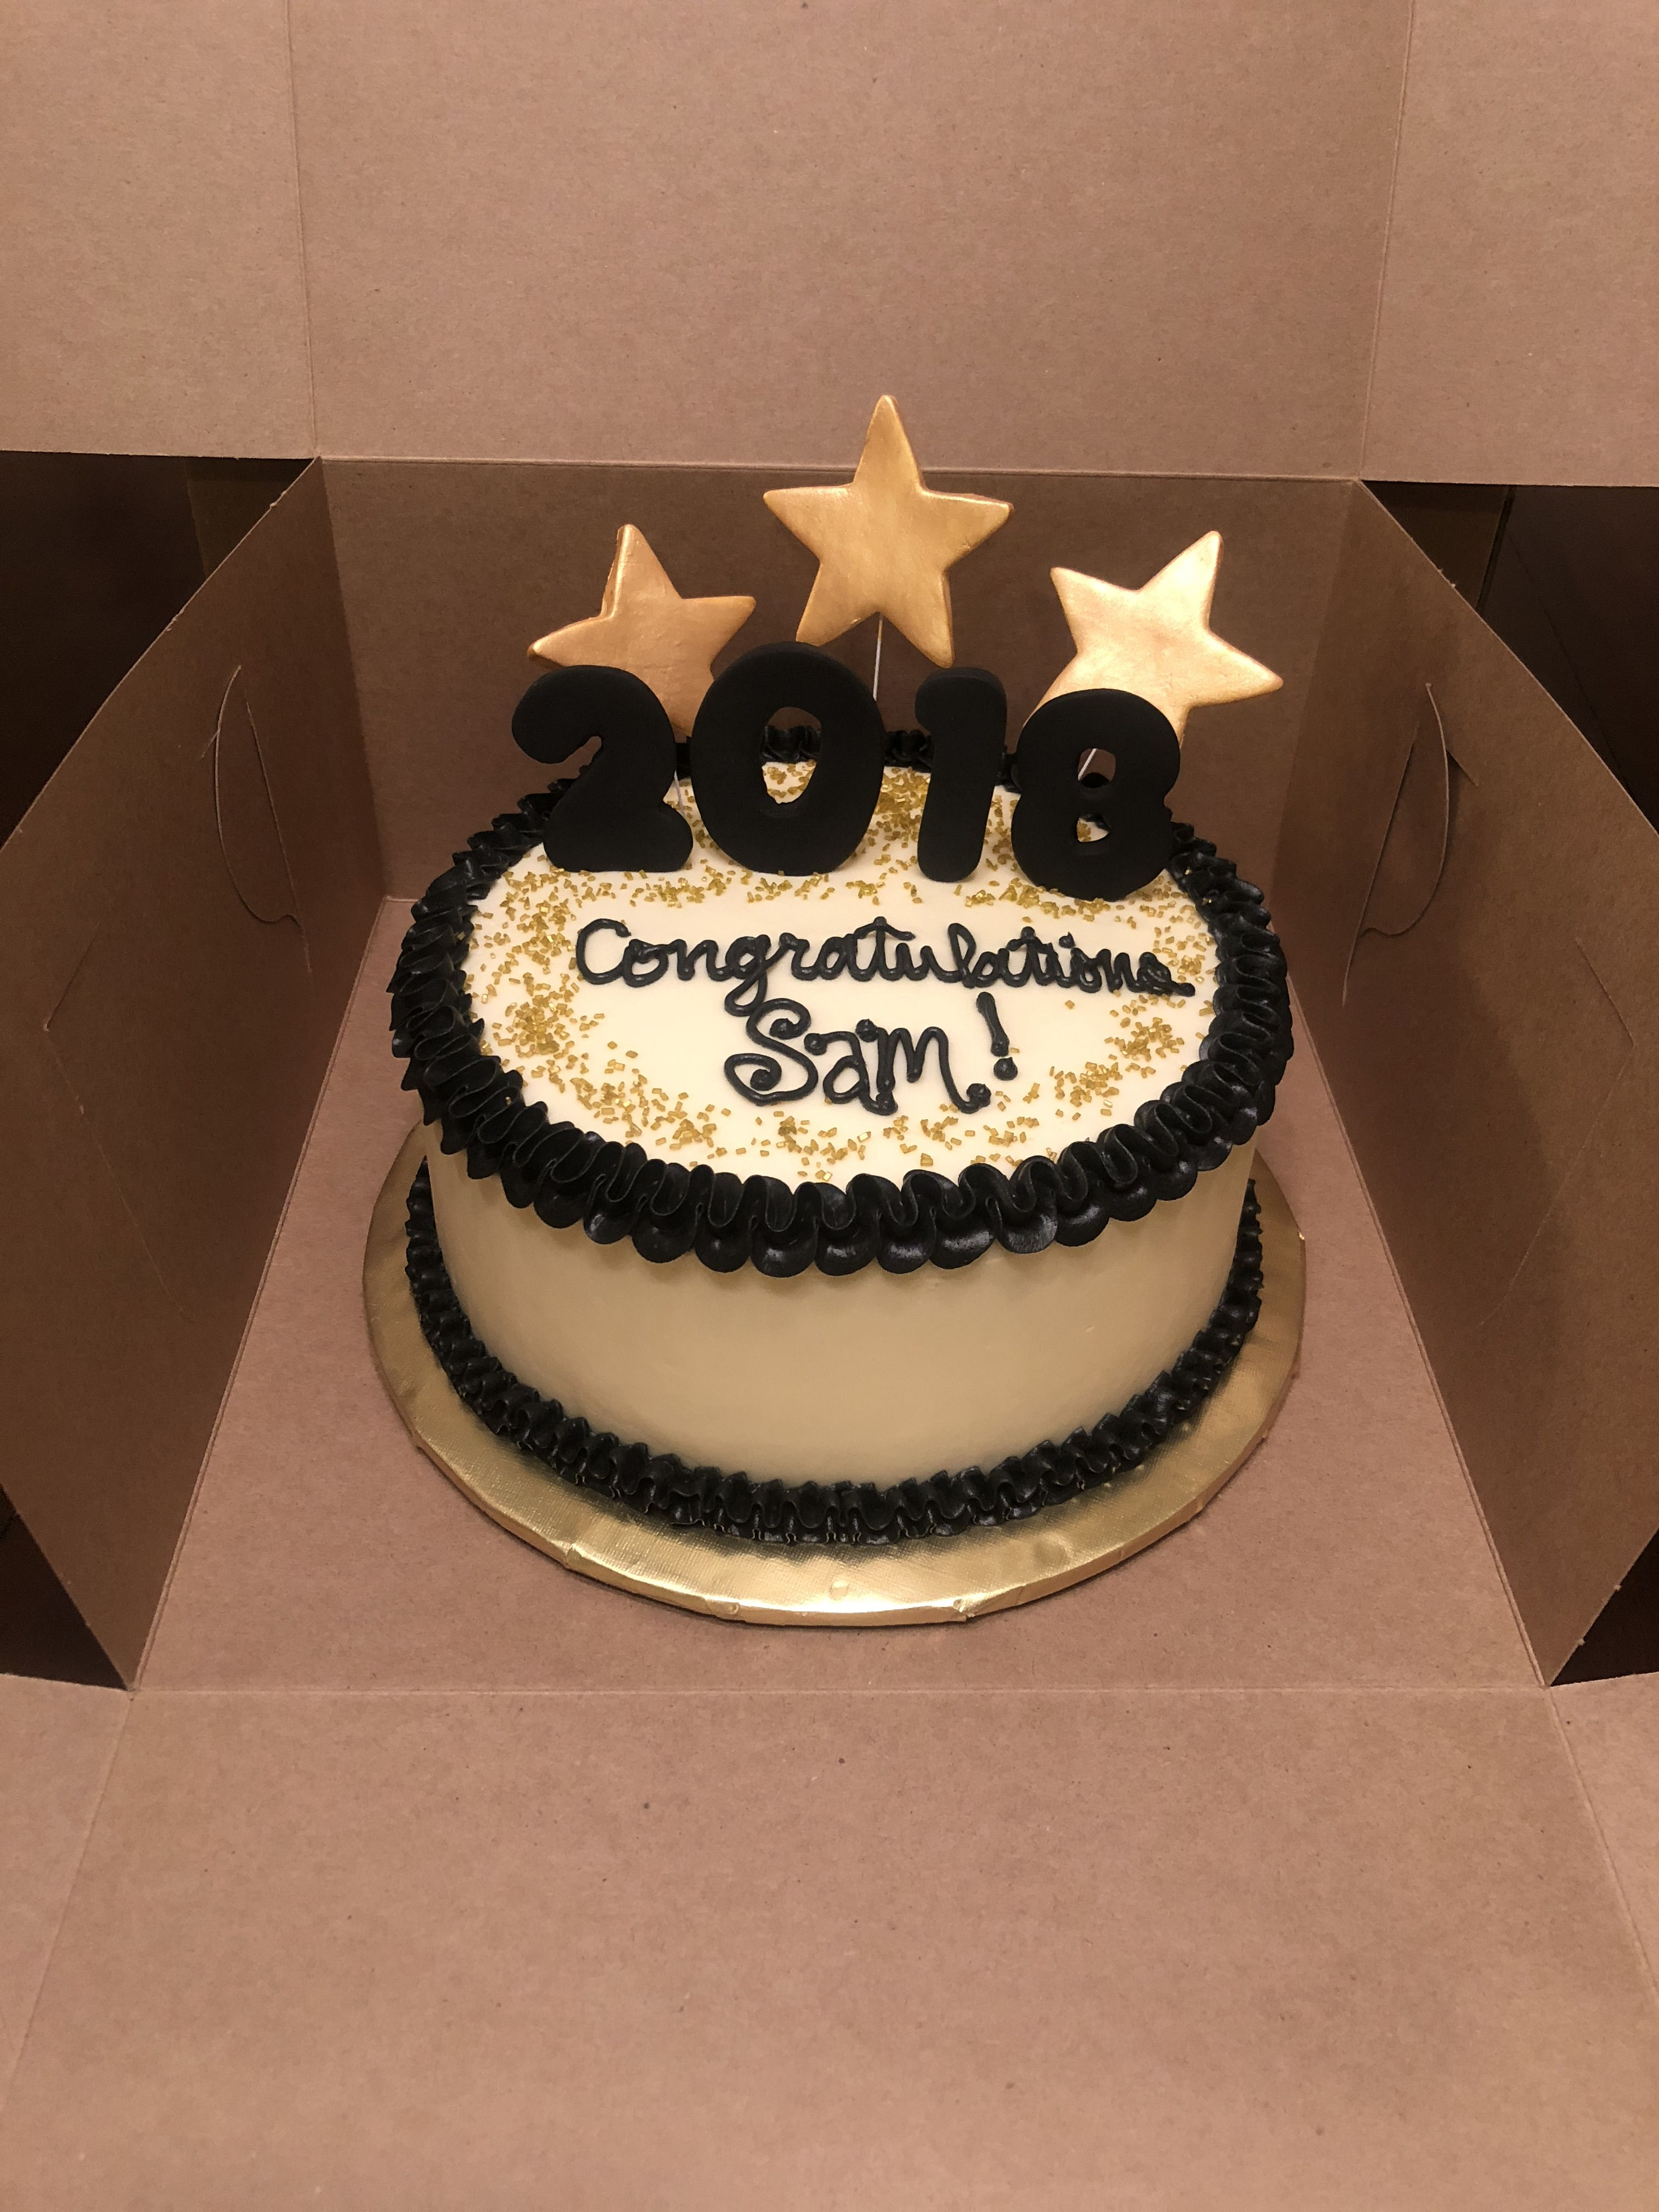 Enjoyable Congratulations Sam This Black And Gold Themed Cake Was For A Personalised Birthday Cards Beptaeletsinfo